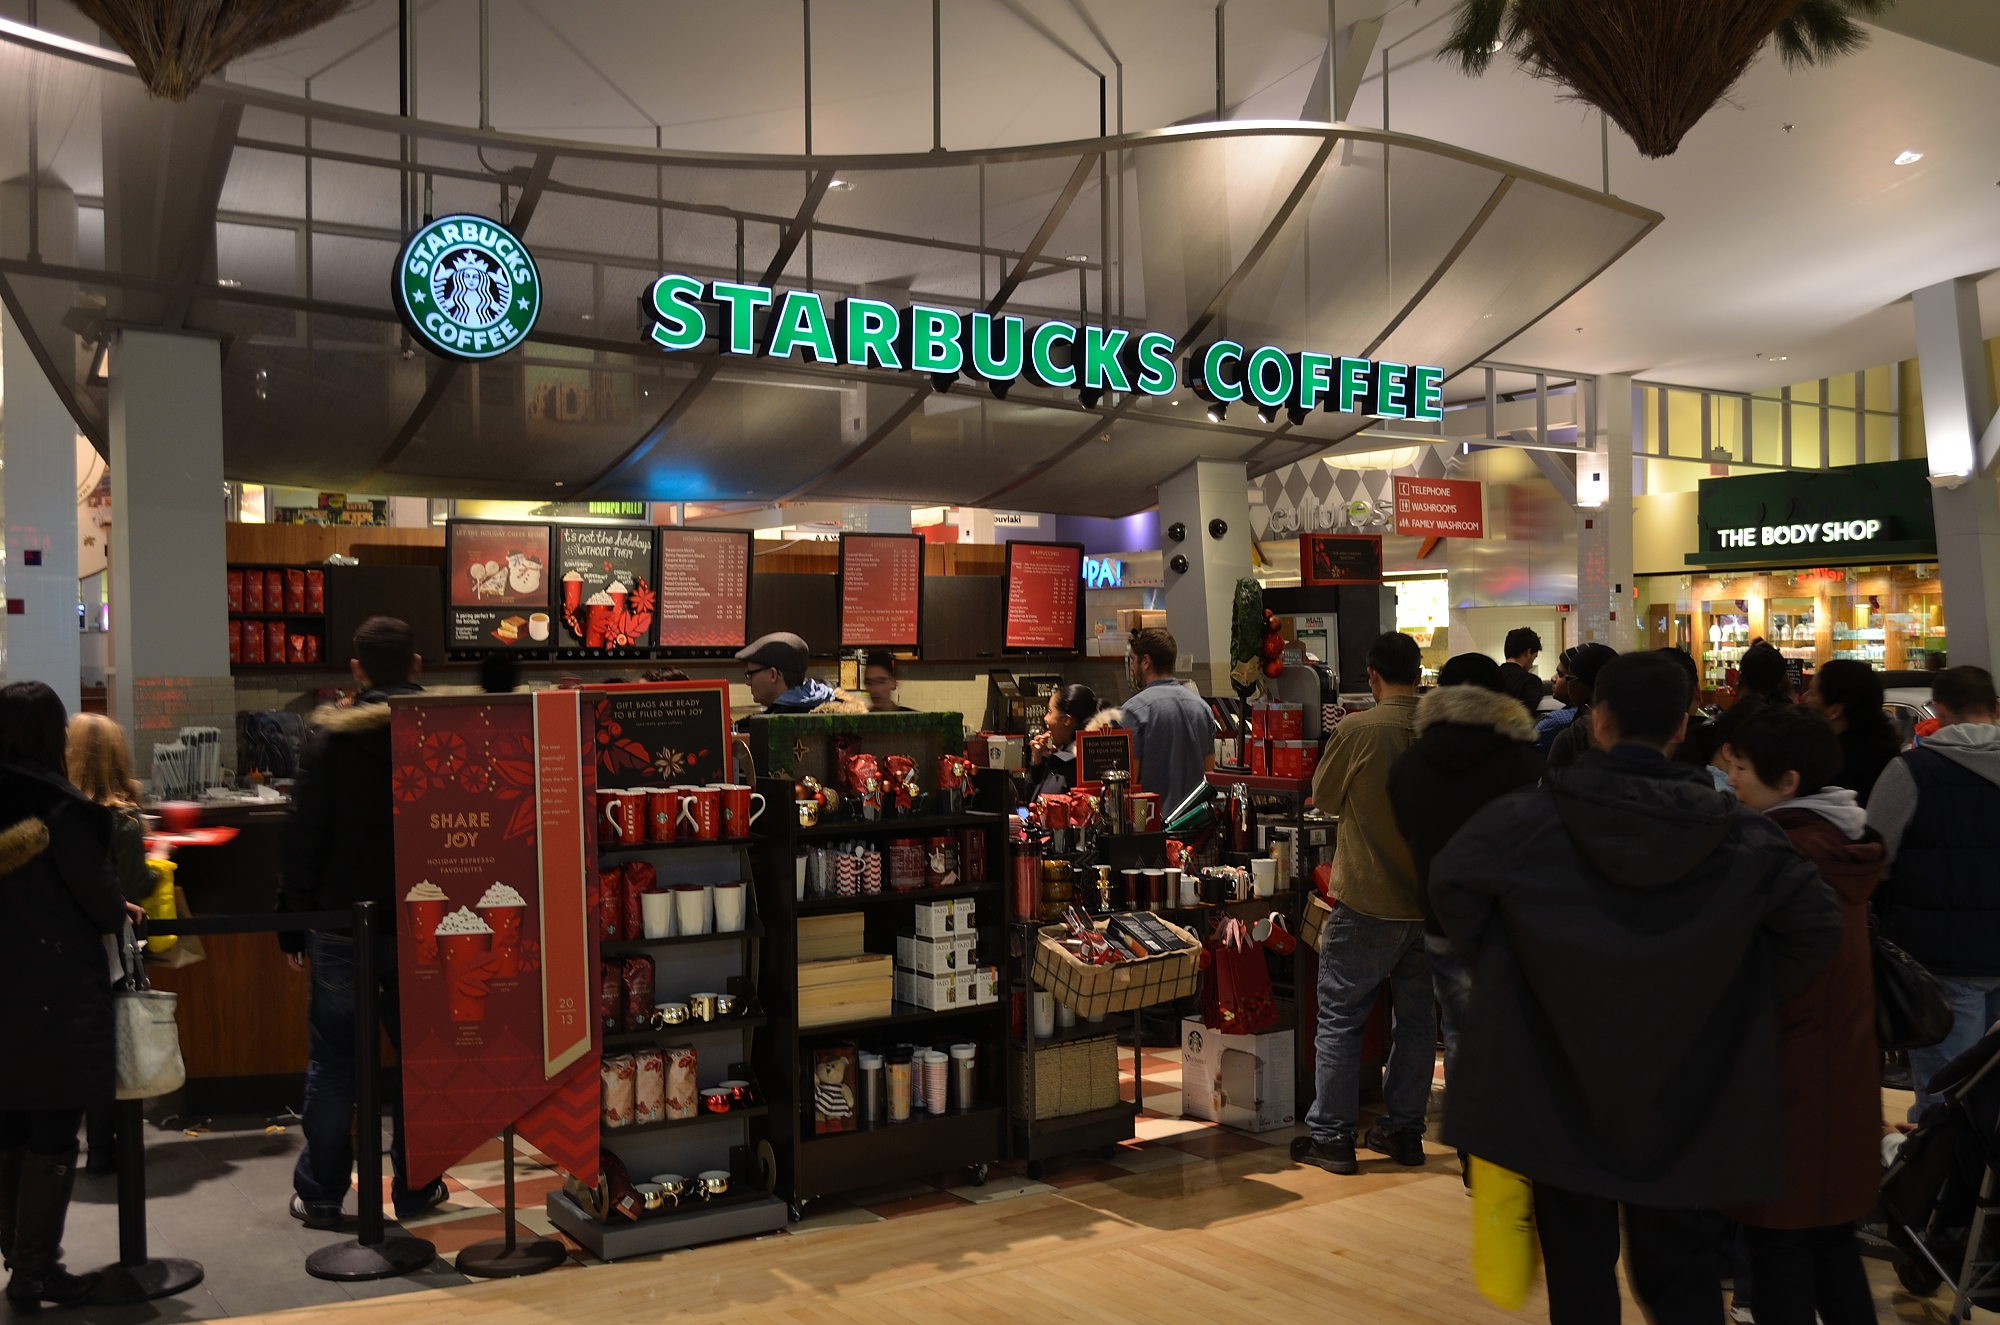 Customers wait in line at a busy Starbucks